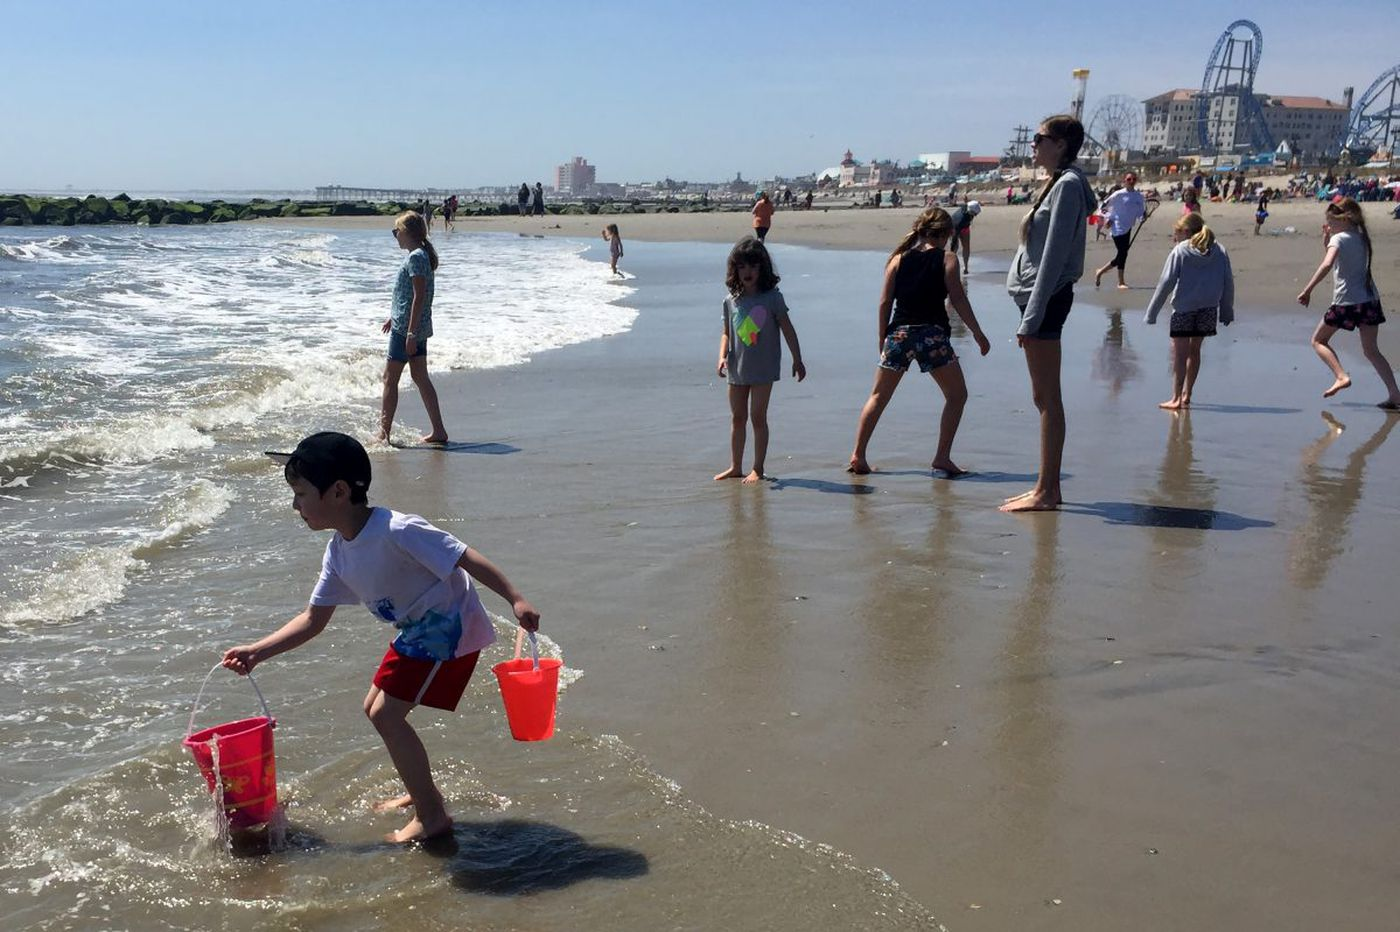 There are different rules for the beach in September | Opinion